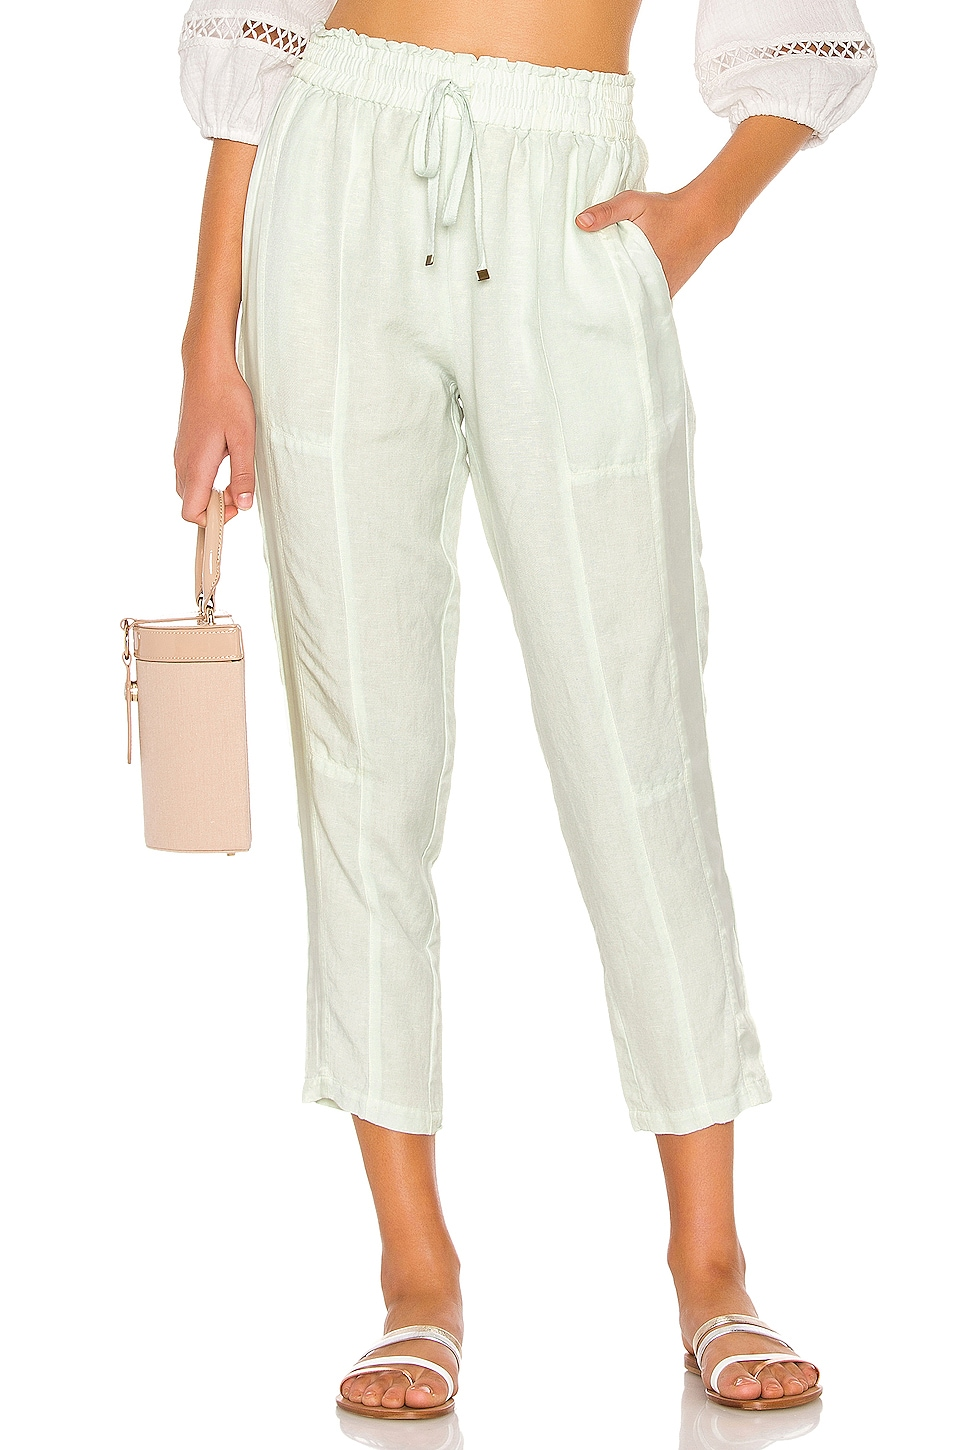 YFB CLOTHING Owen Pant in Cotton